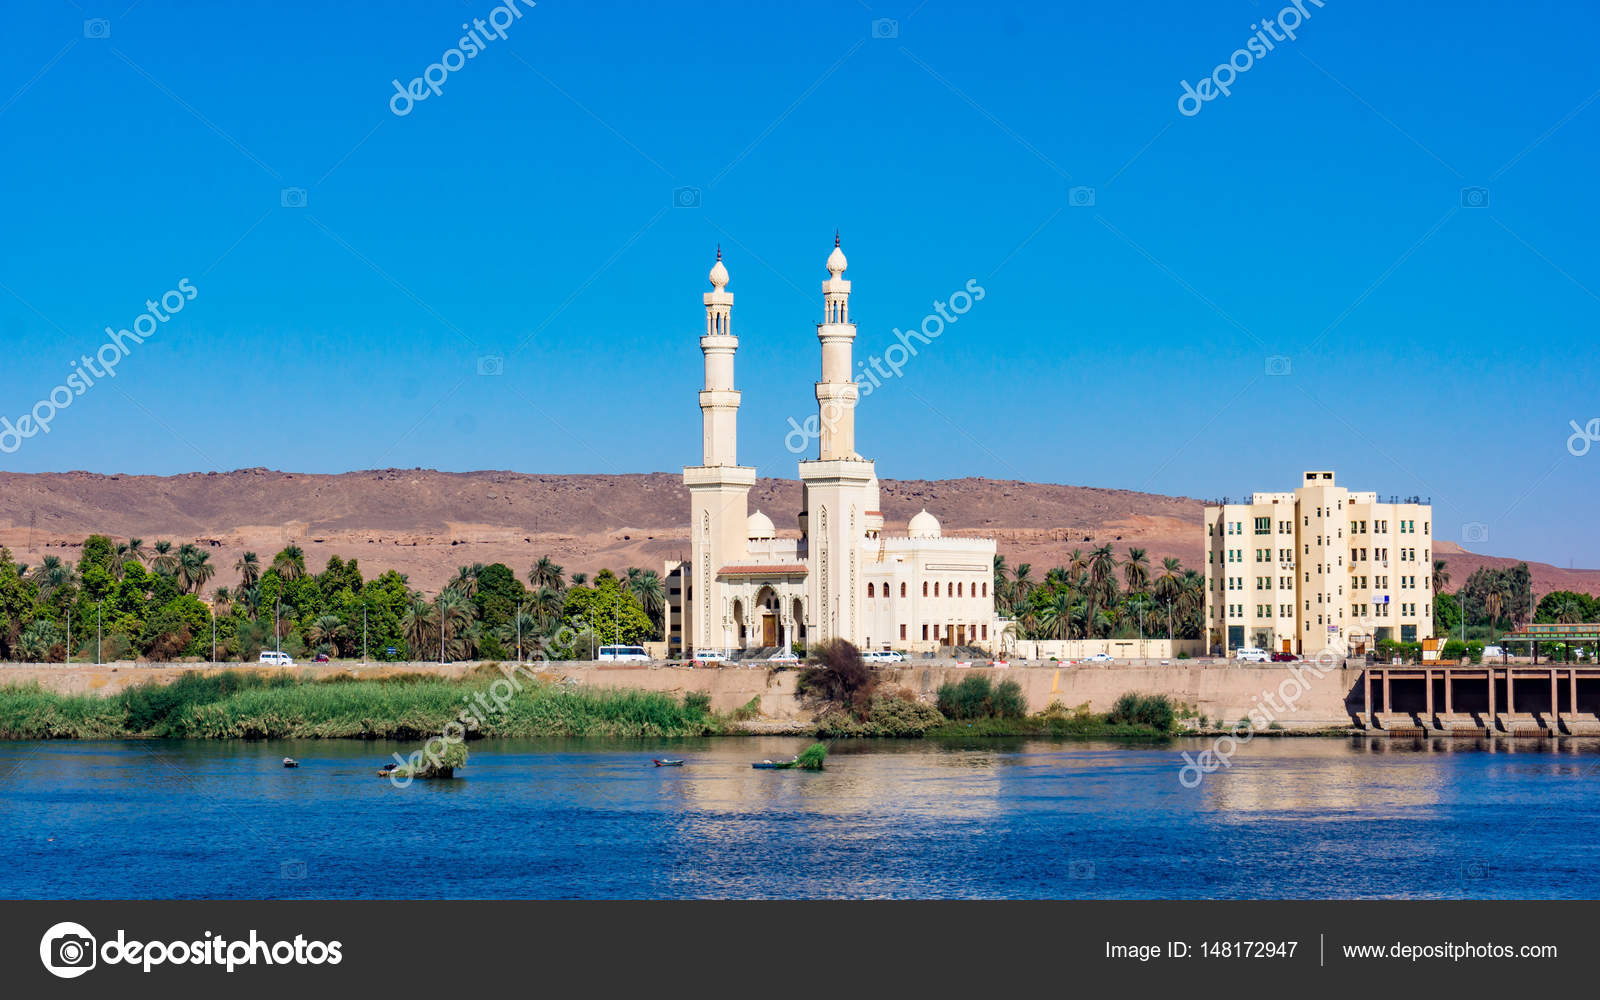 the el-tabia mosque in aswan, egypt. egyptian mosque minarets. a